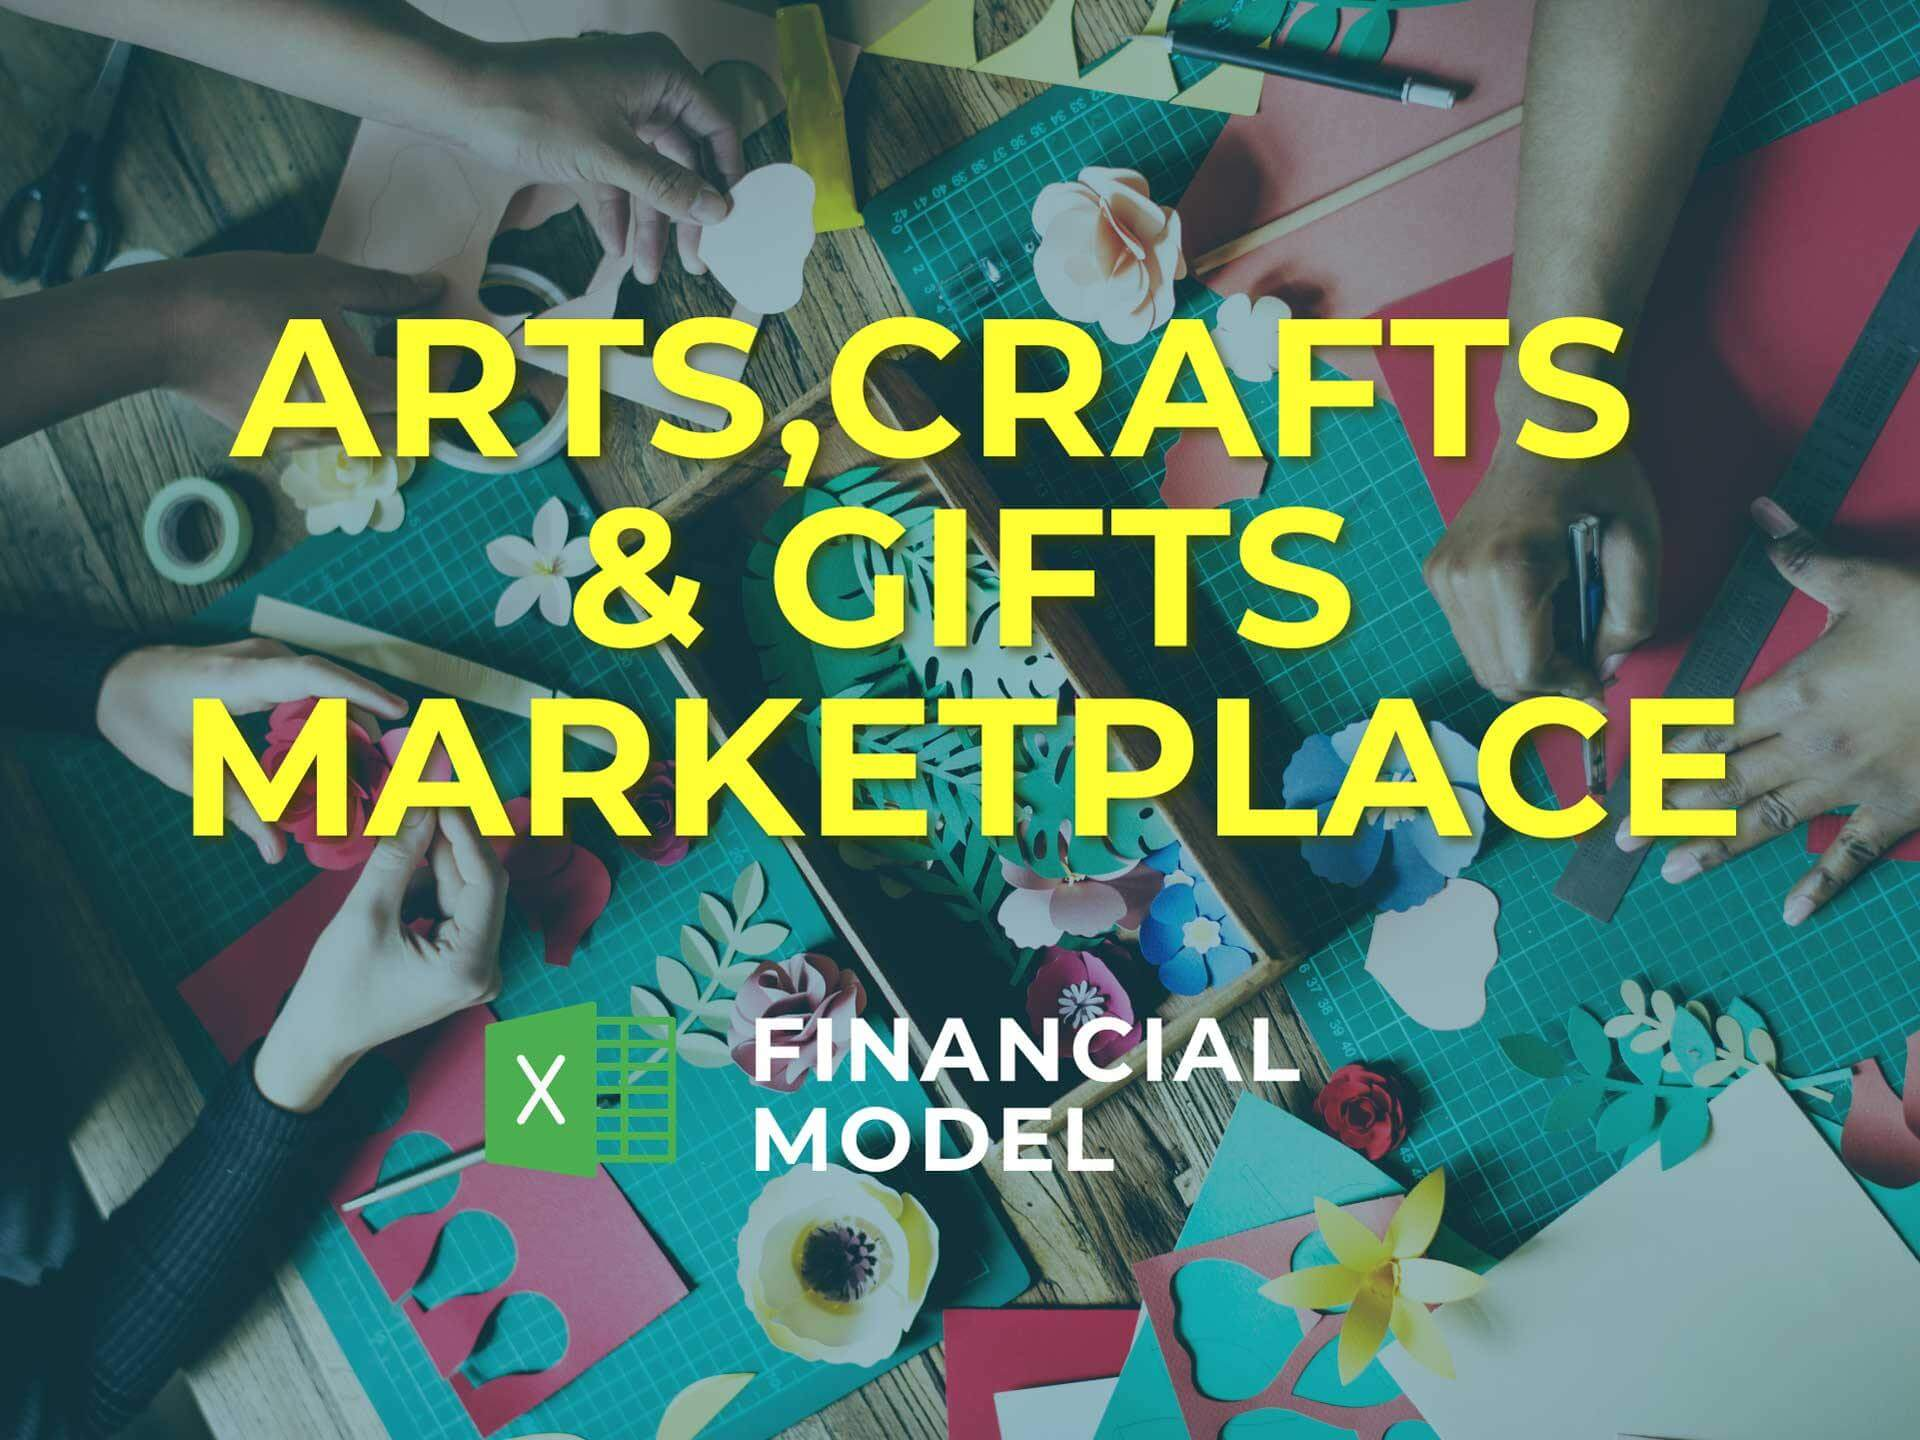 Arts, Crafts & Gifts Marketplace Financial Model Excel Template - Templarket -  Business Templates Marketplace